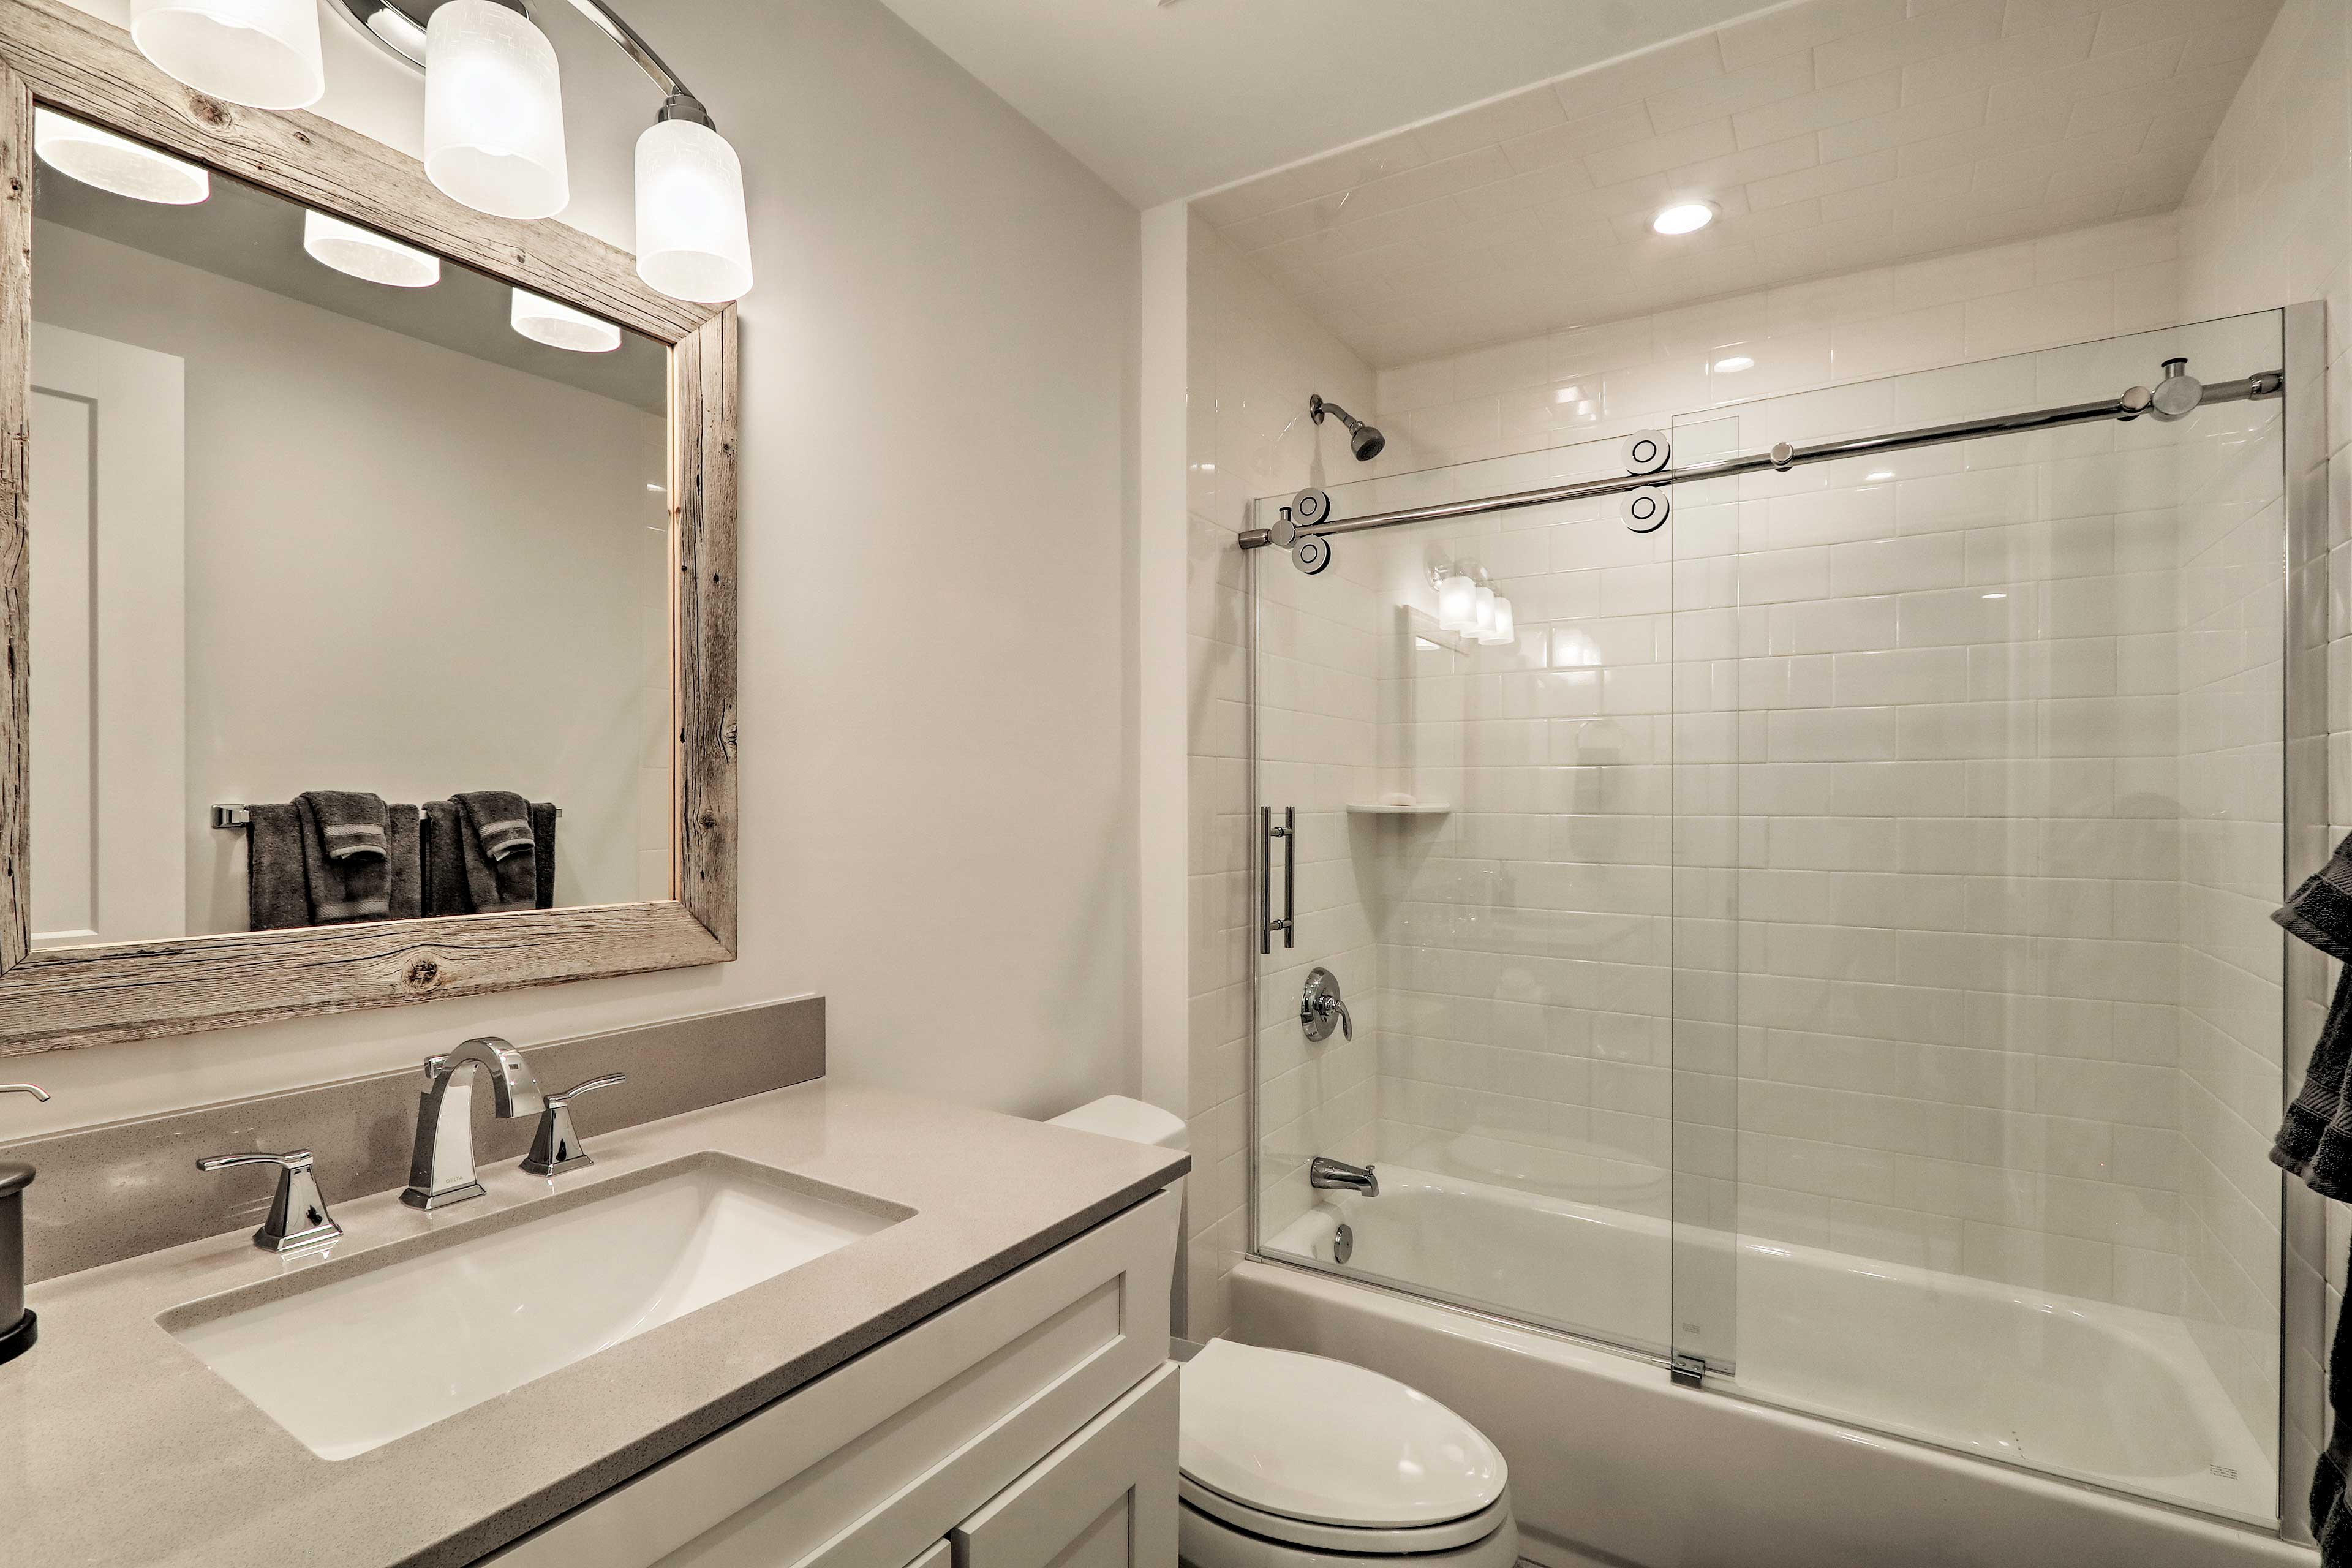 Rinse off with a shower or relax with a bath.